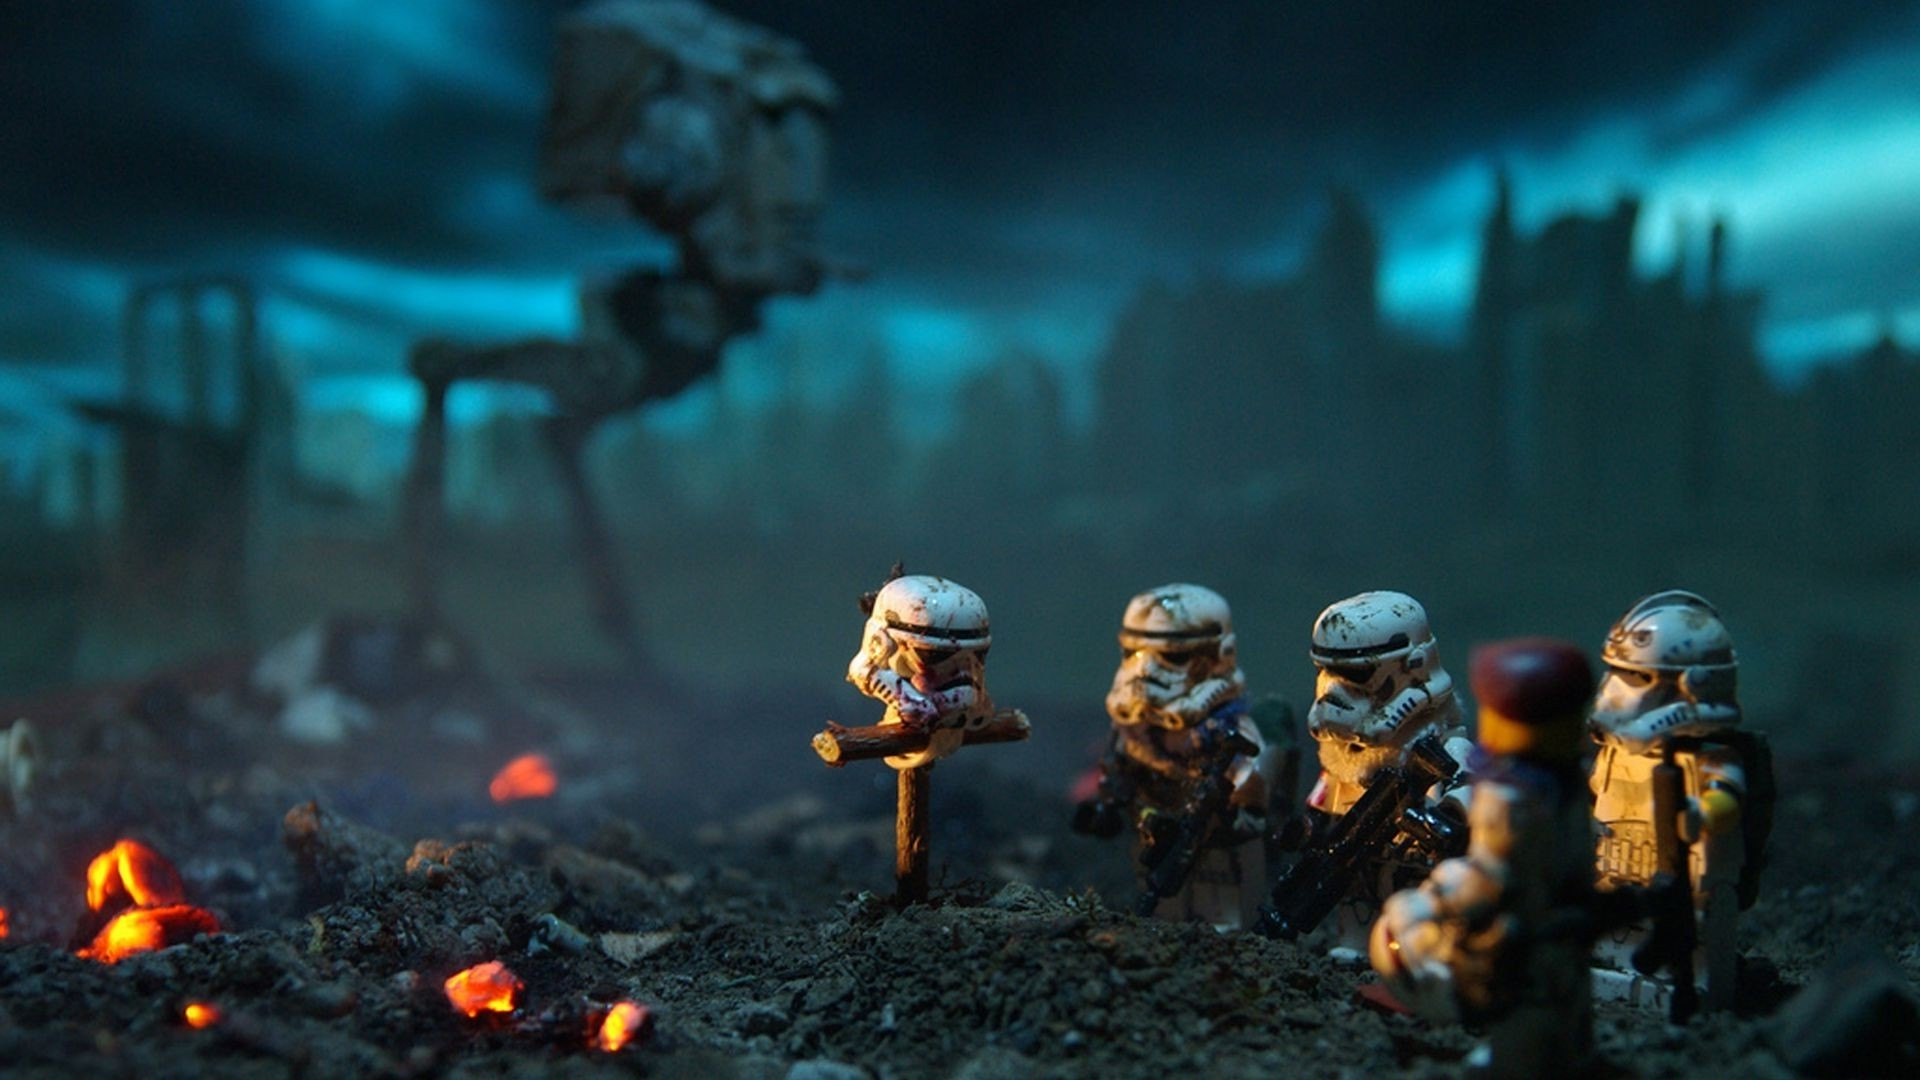 lego star wars wallpapers background free download > subwallpaper